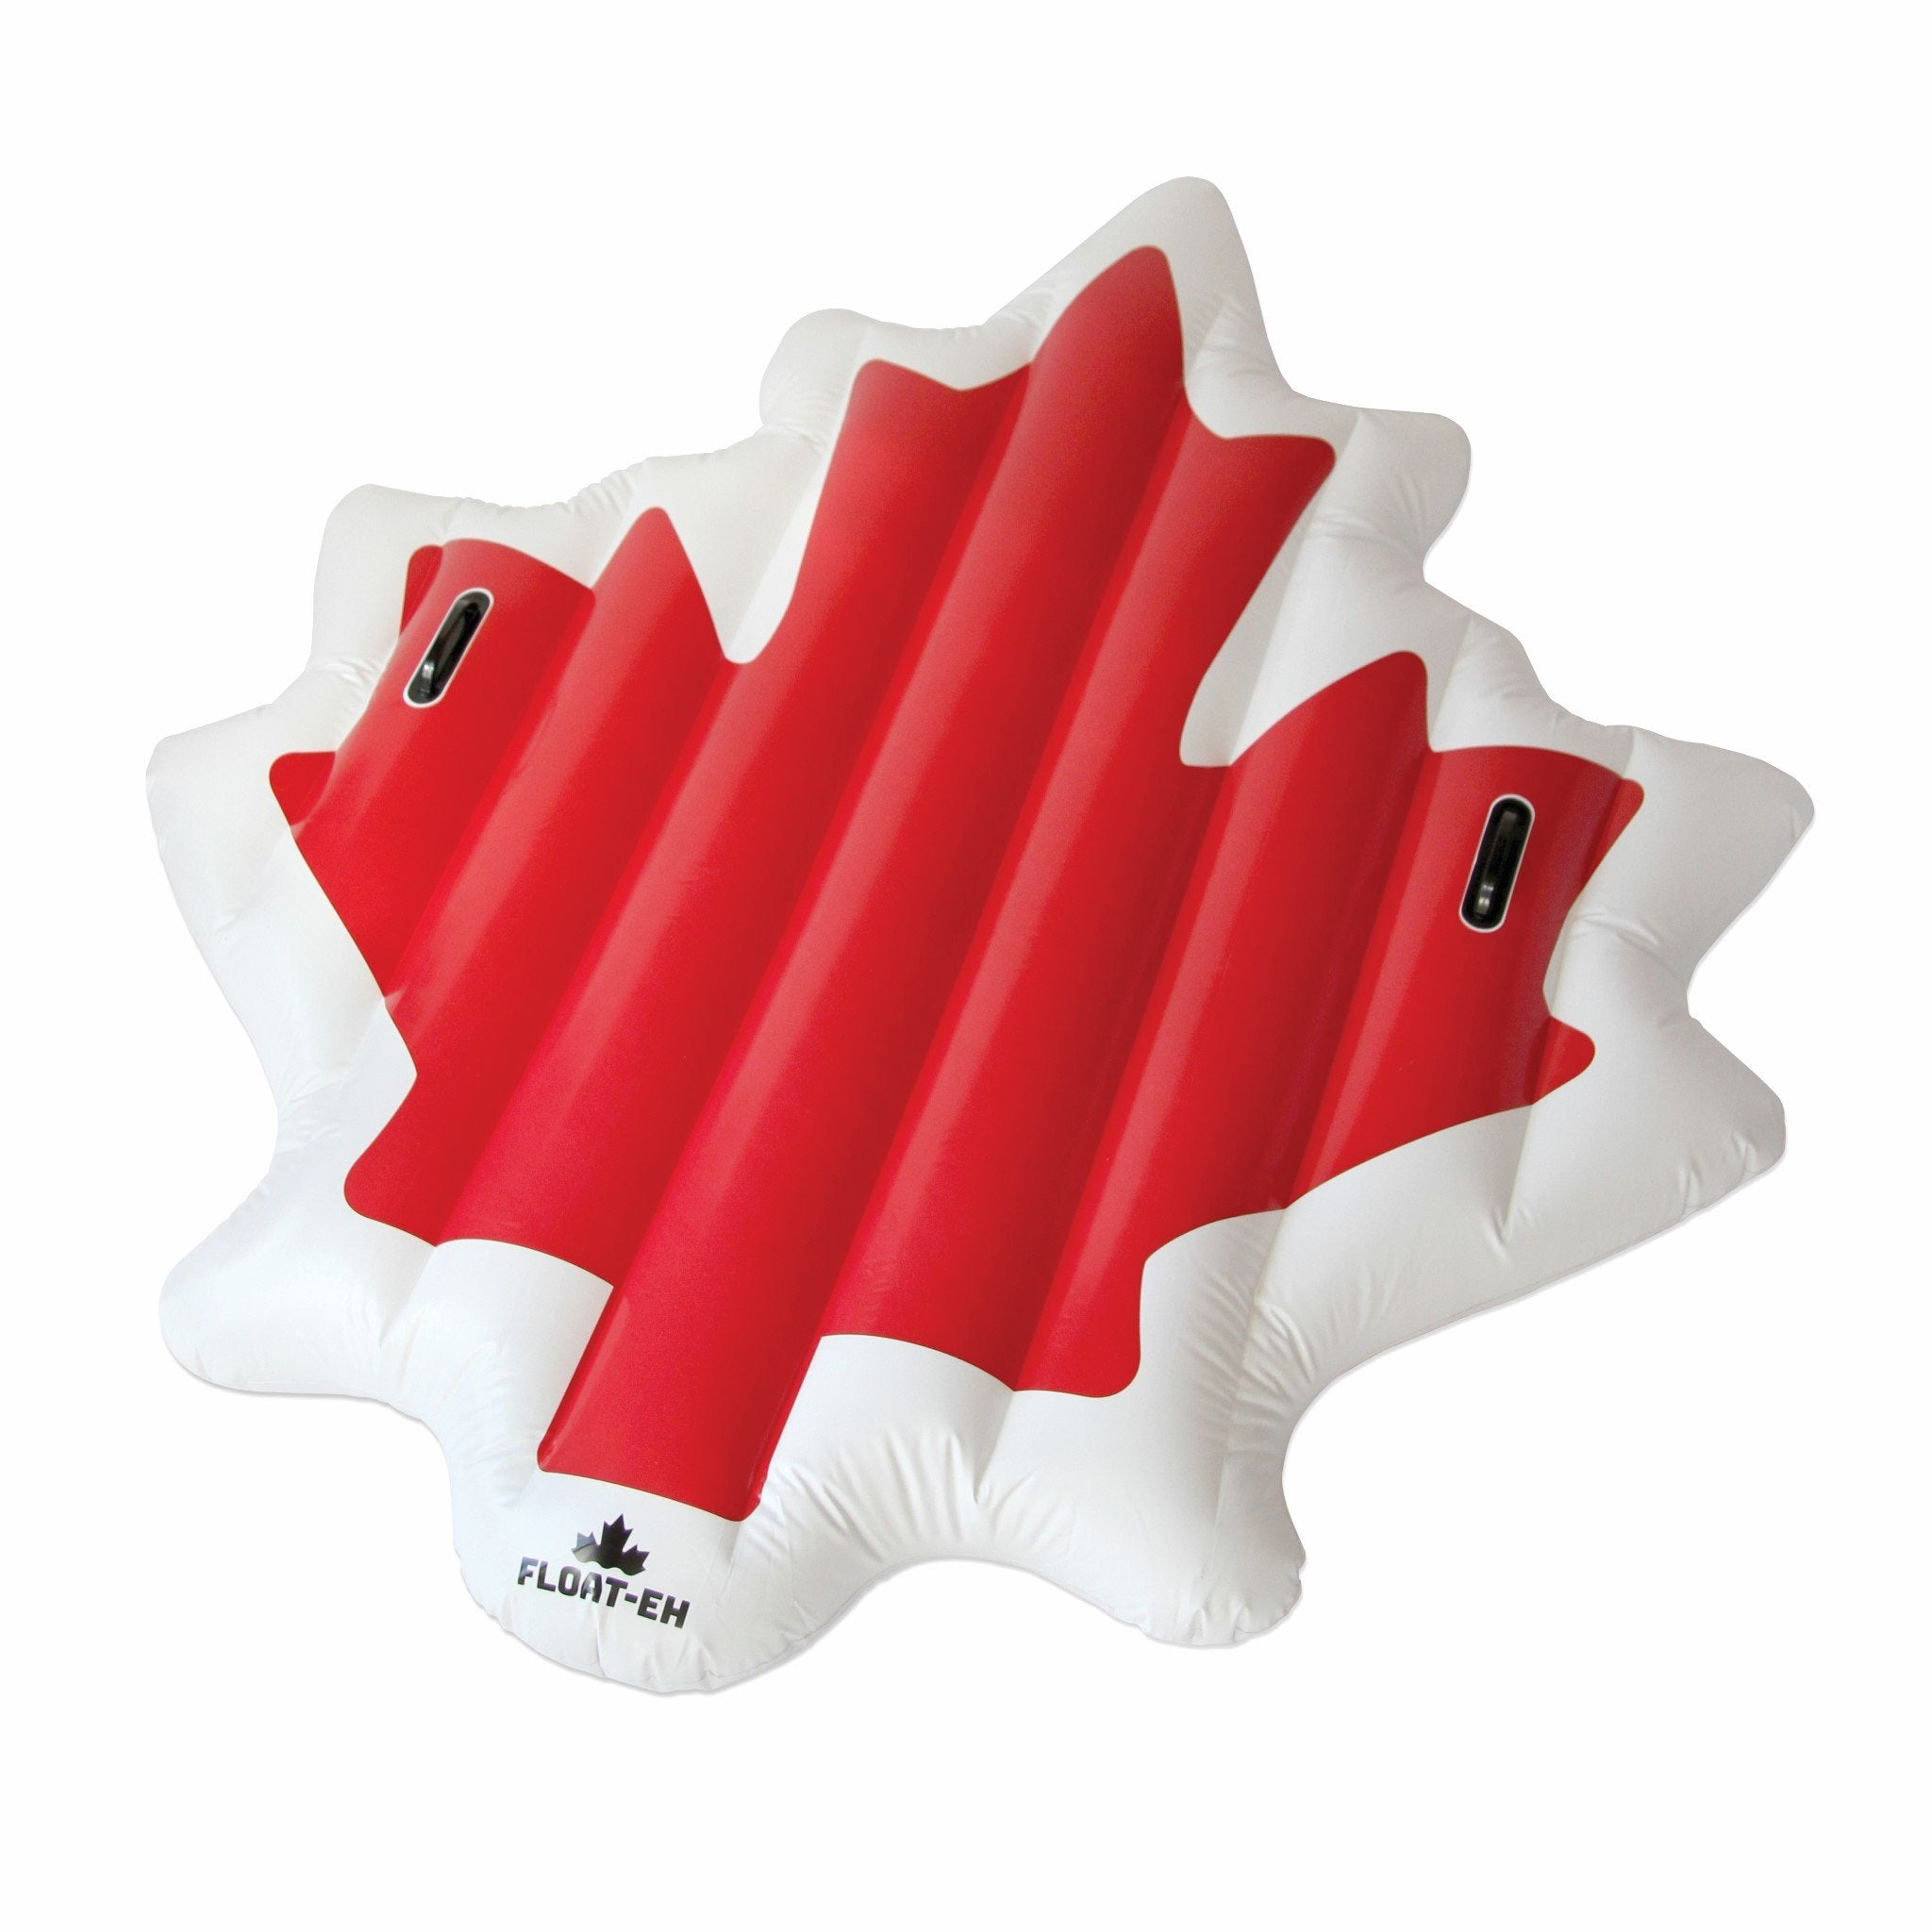 The Maple - Canadian Leaf Swimming Pool Float